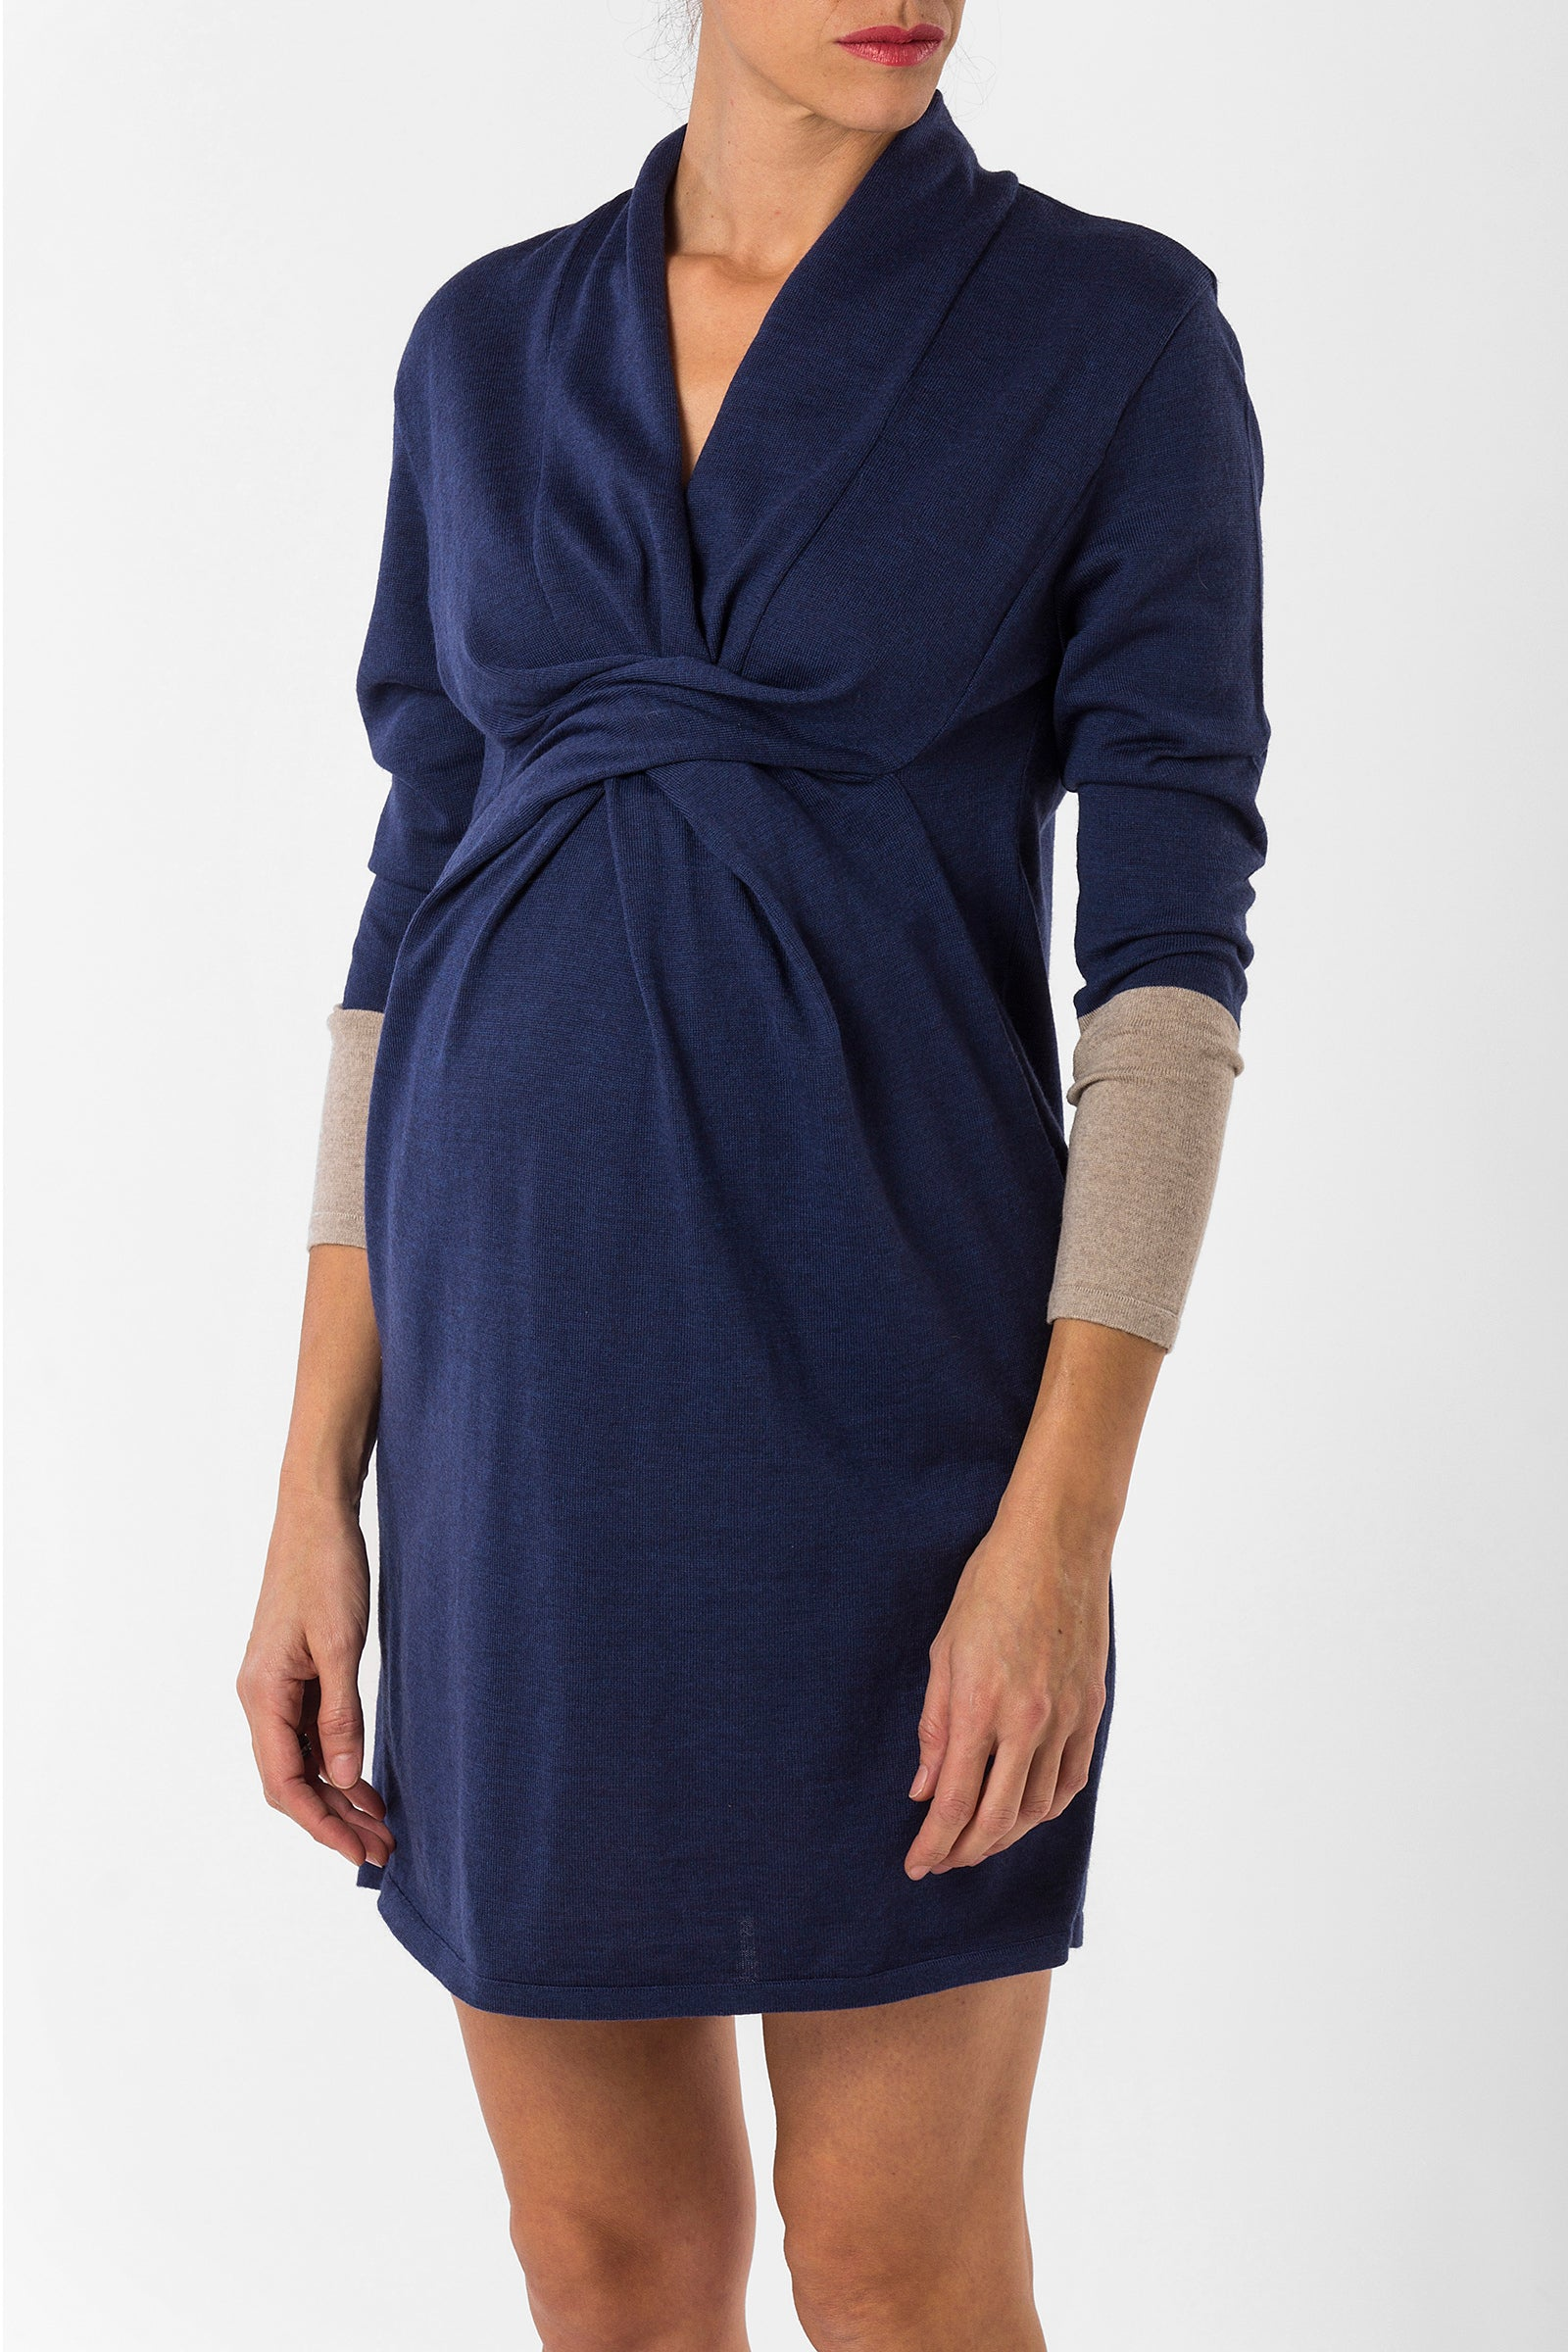 cf4ed7019f0 pregnancy dress - nursing dress - merino wool dress - blue